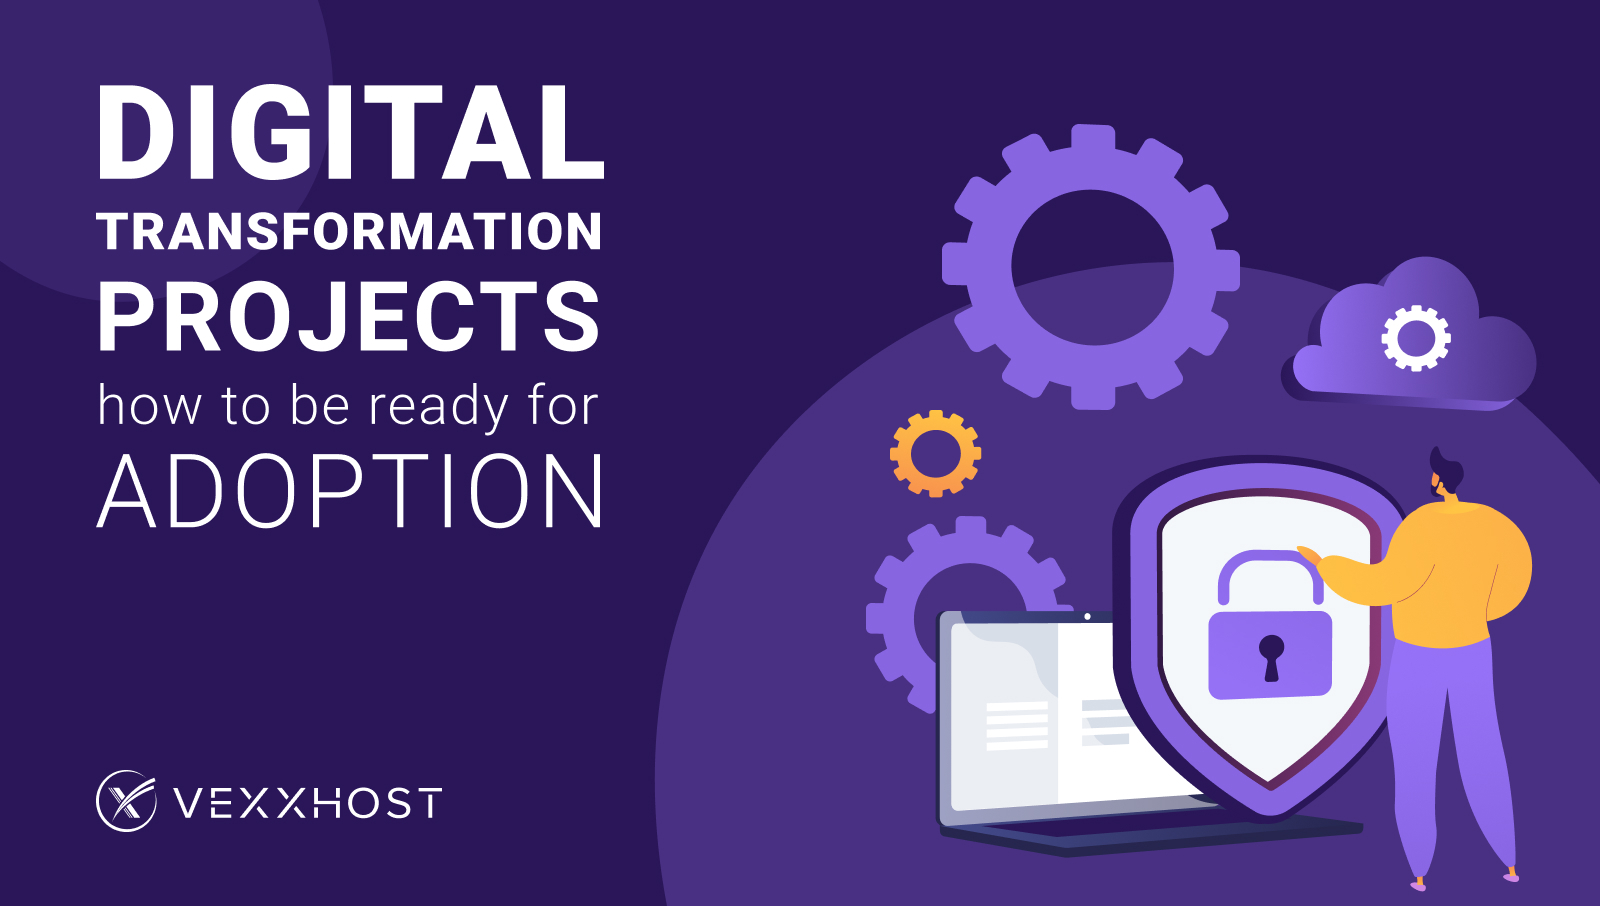 Digital Transformation Projects - How to Be Ready for Adoption